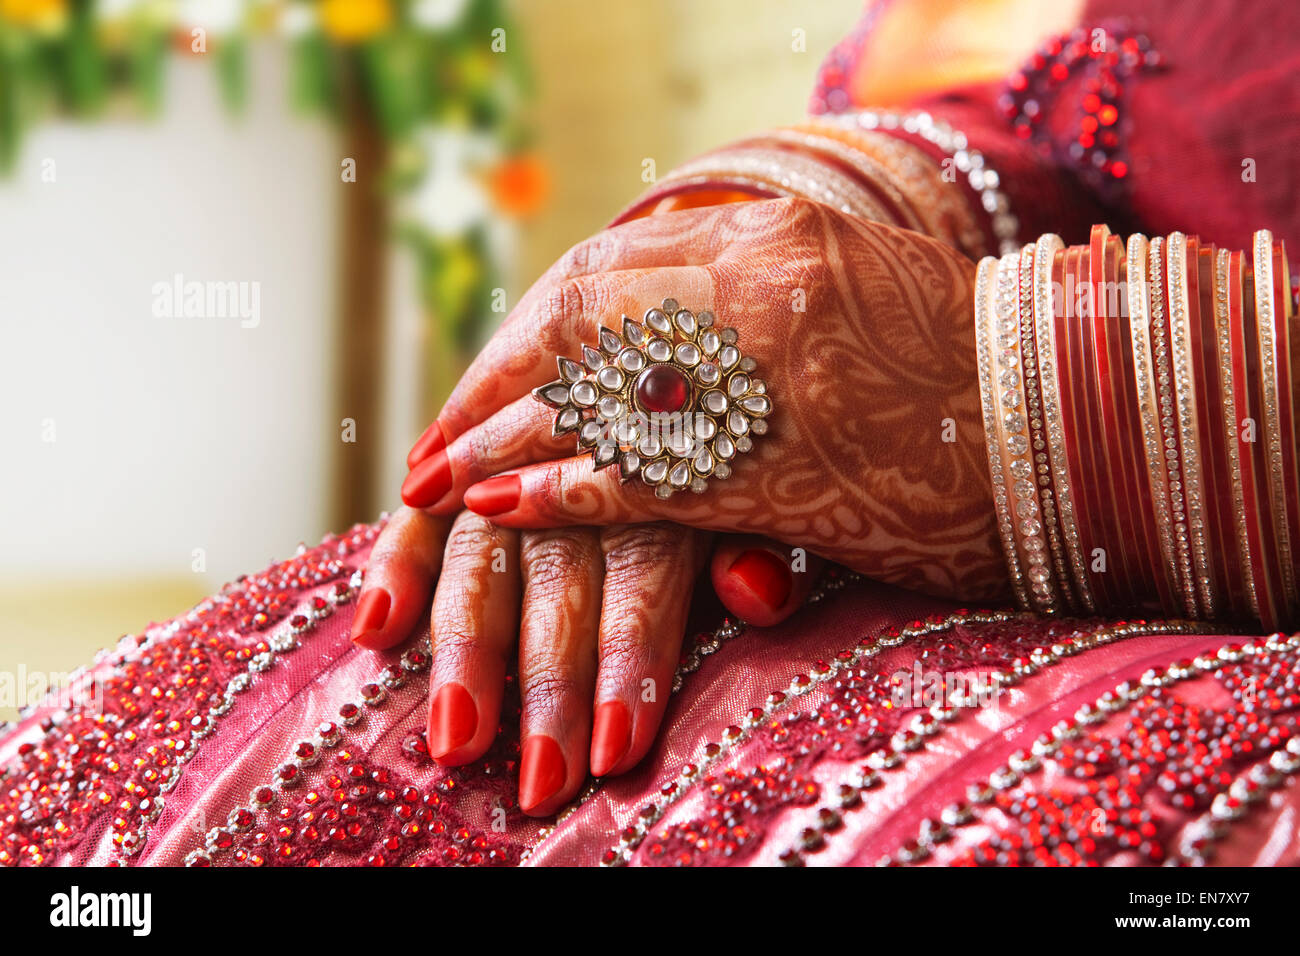 Close-up of a Brides hands in wedding bangles and ring Stock Photo ...